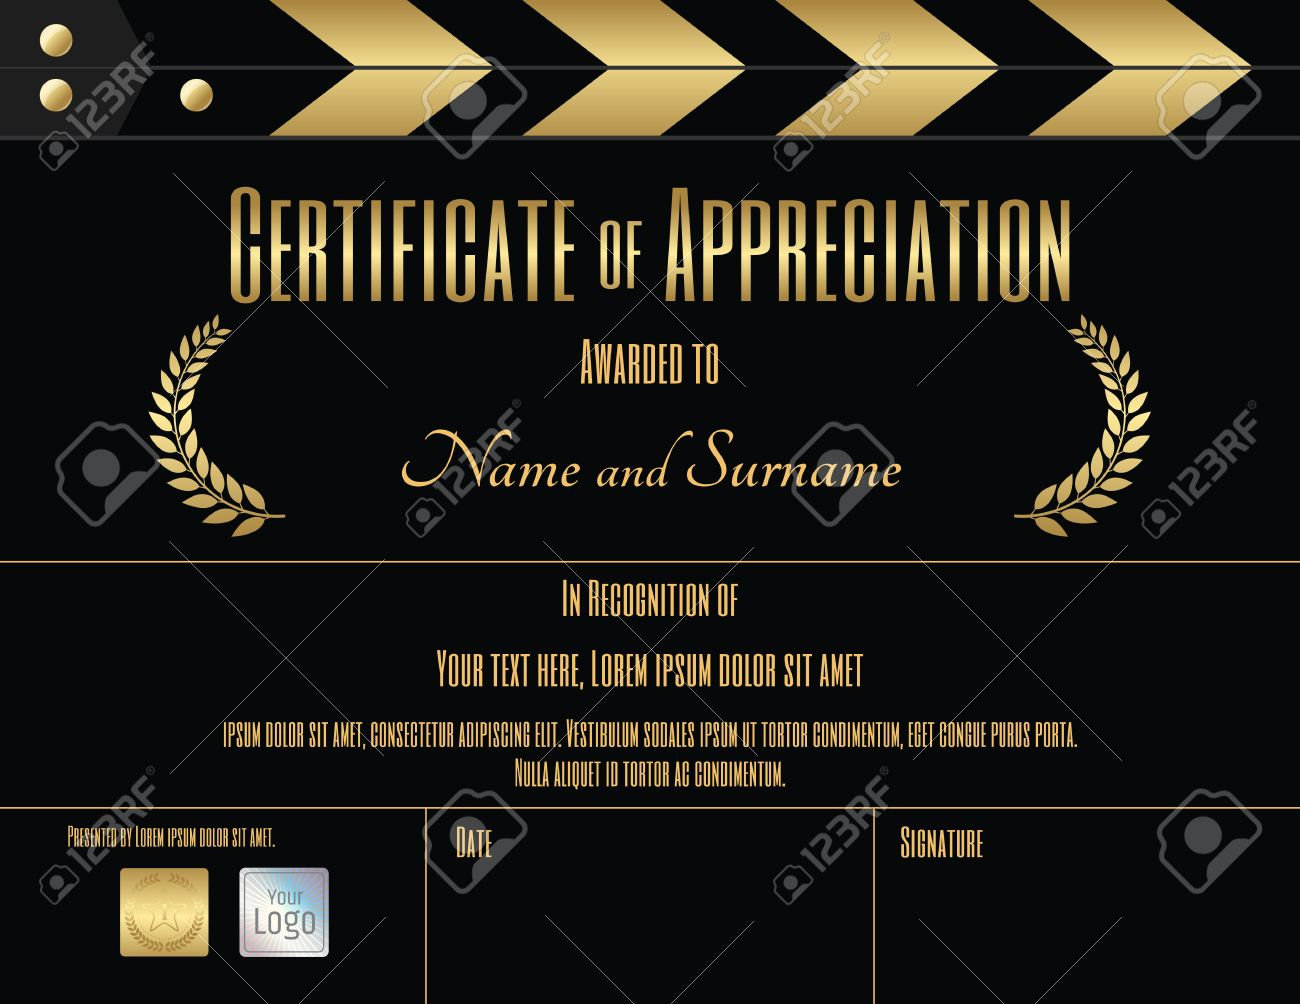 Certificate of appreciation template in black and gold with movie certificate of appreciation template in black and gold with movie and slate film theme stock vector yadclub Image collections